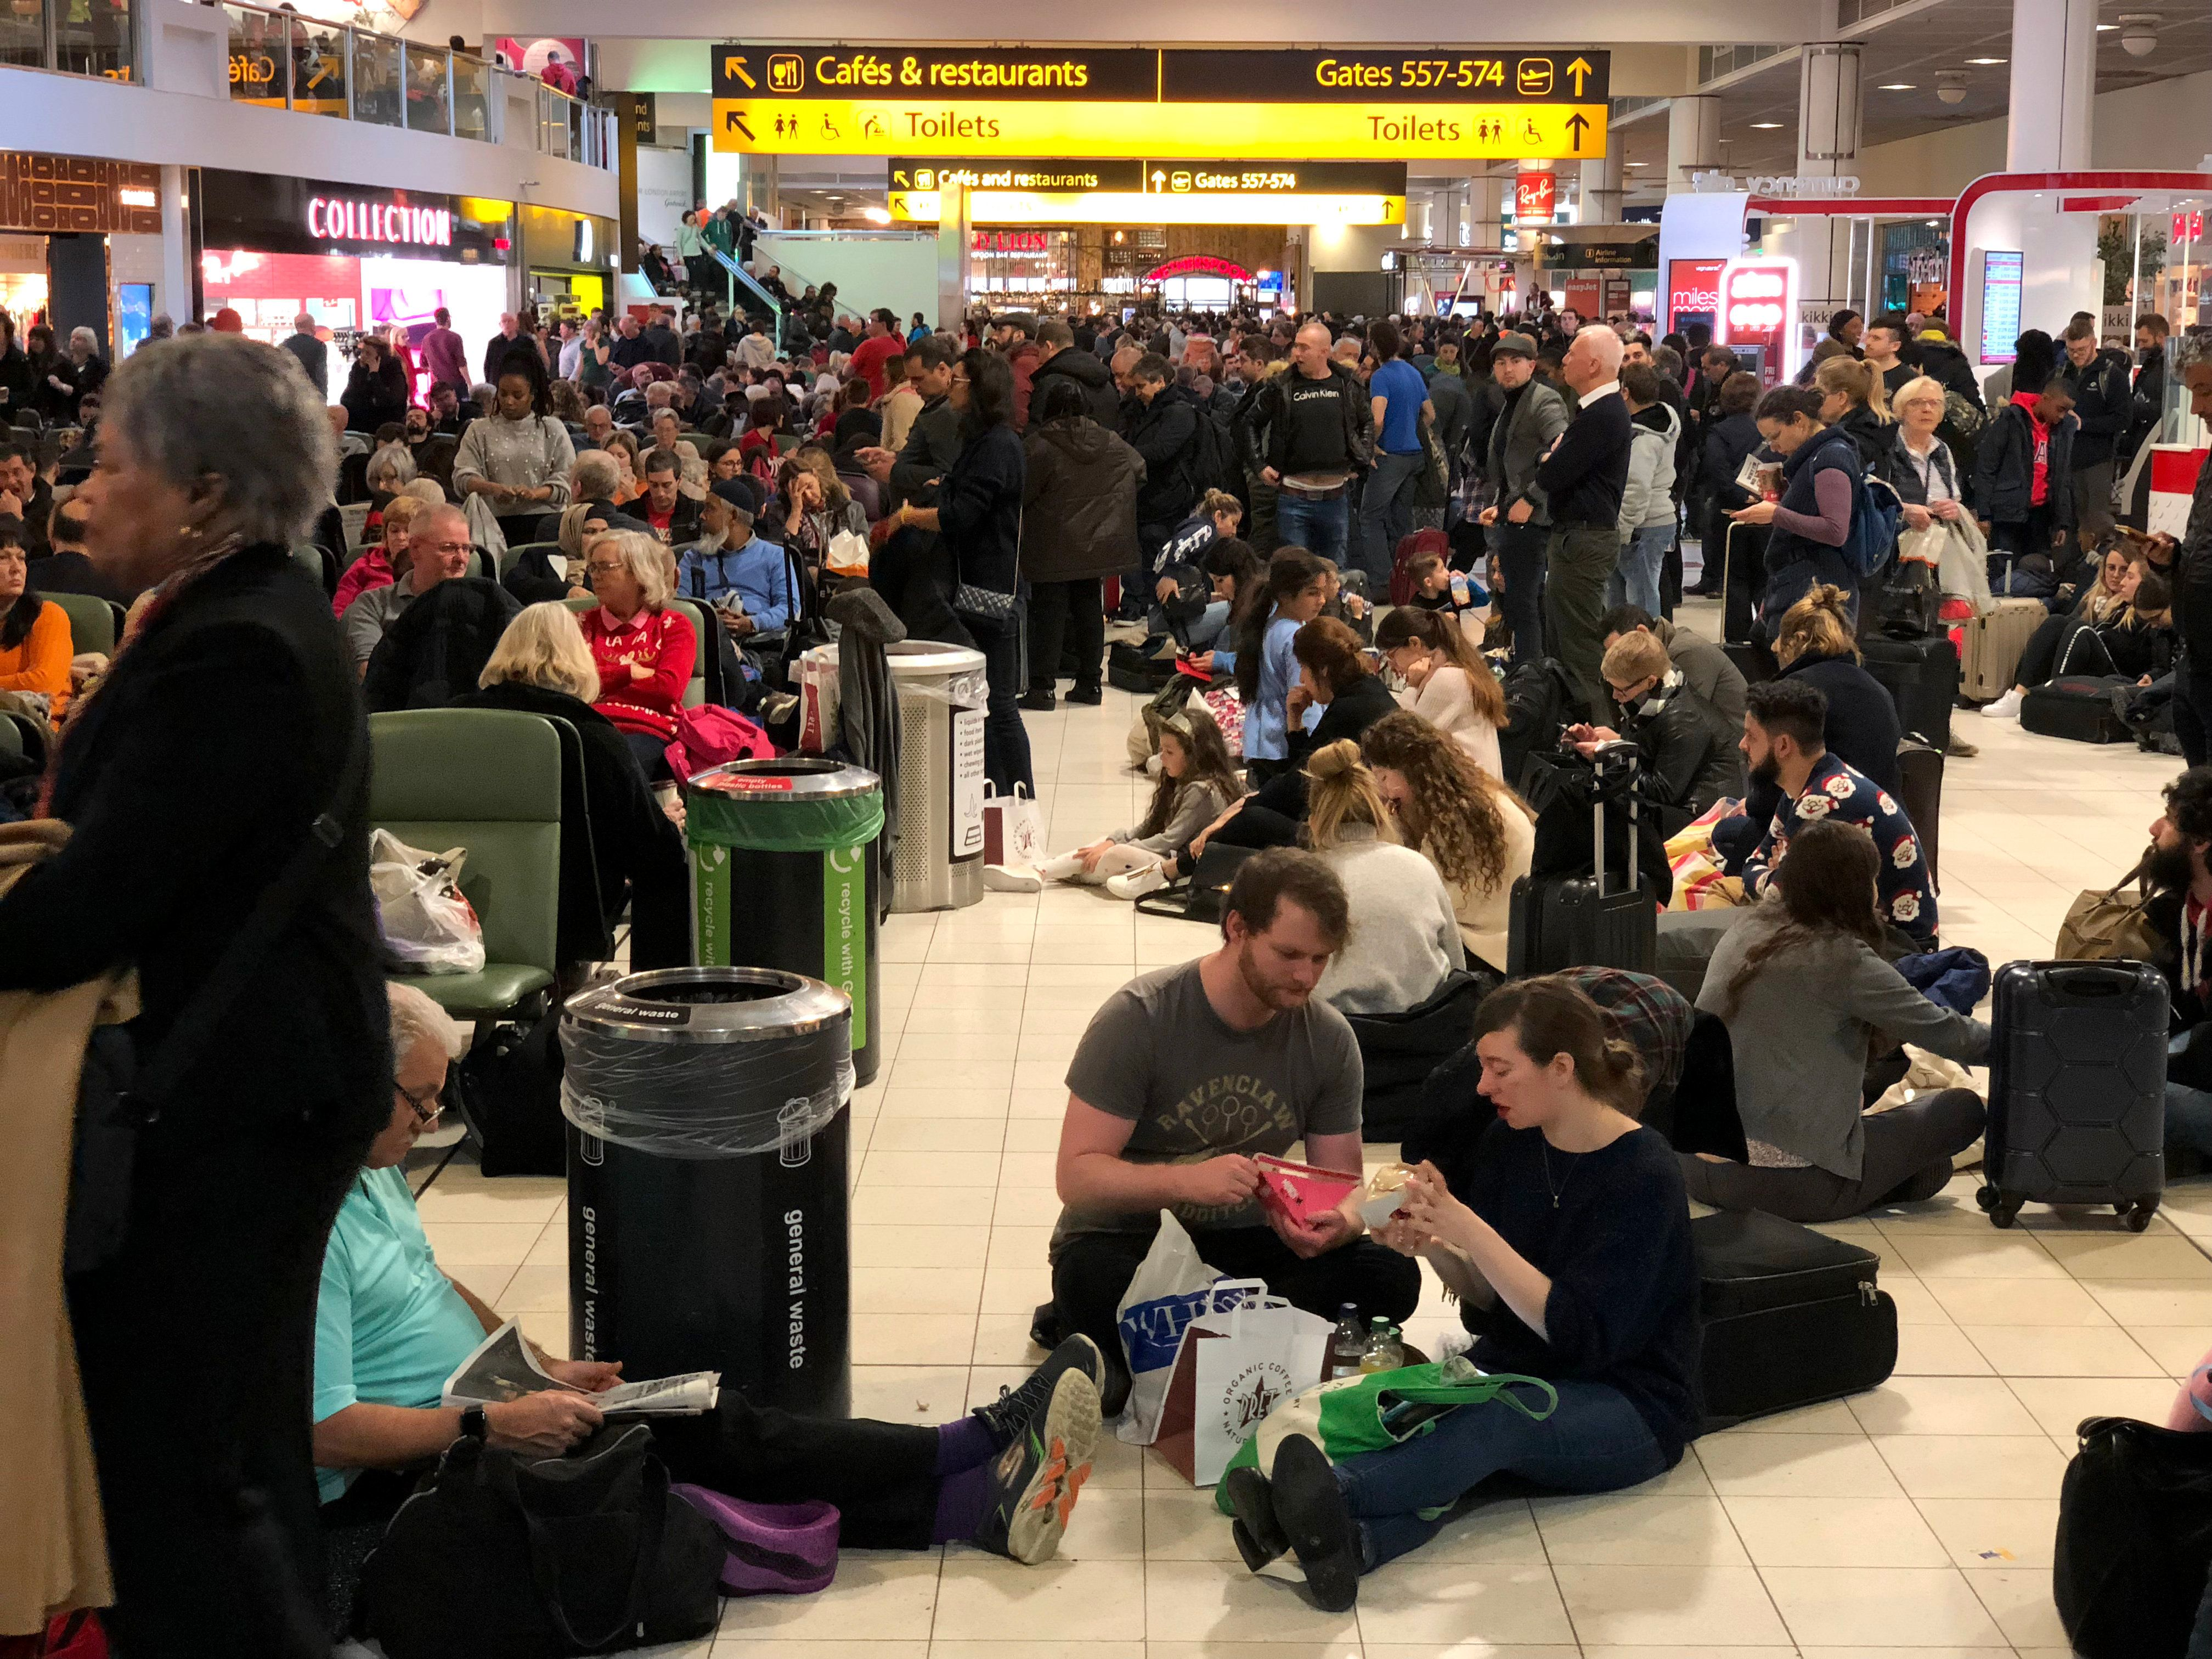 LONDON, ENGLAND - DECEMBER 20 : Passengers stranded at Gatwick waited for updates on their travel options on December 20, 2018 in London, England.  Authorities at Gatwick closed the runaway after Drones were spotted over the airport on the night of December 19. The shutdown has sparked a succession of delays and diversions in the run up to the Christmas getaway. (Photo by Athanasios Gioumpasis/Getty Images)